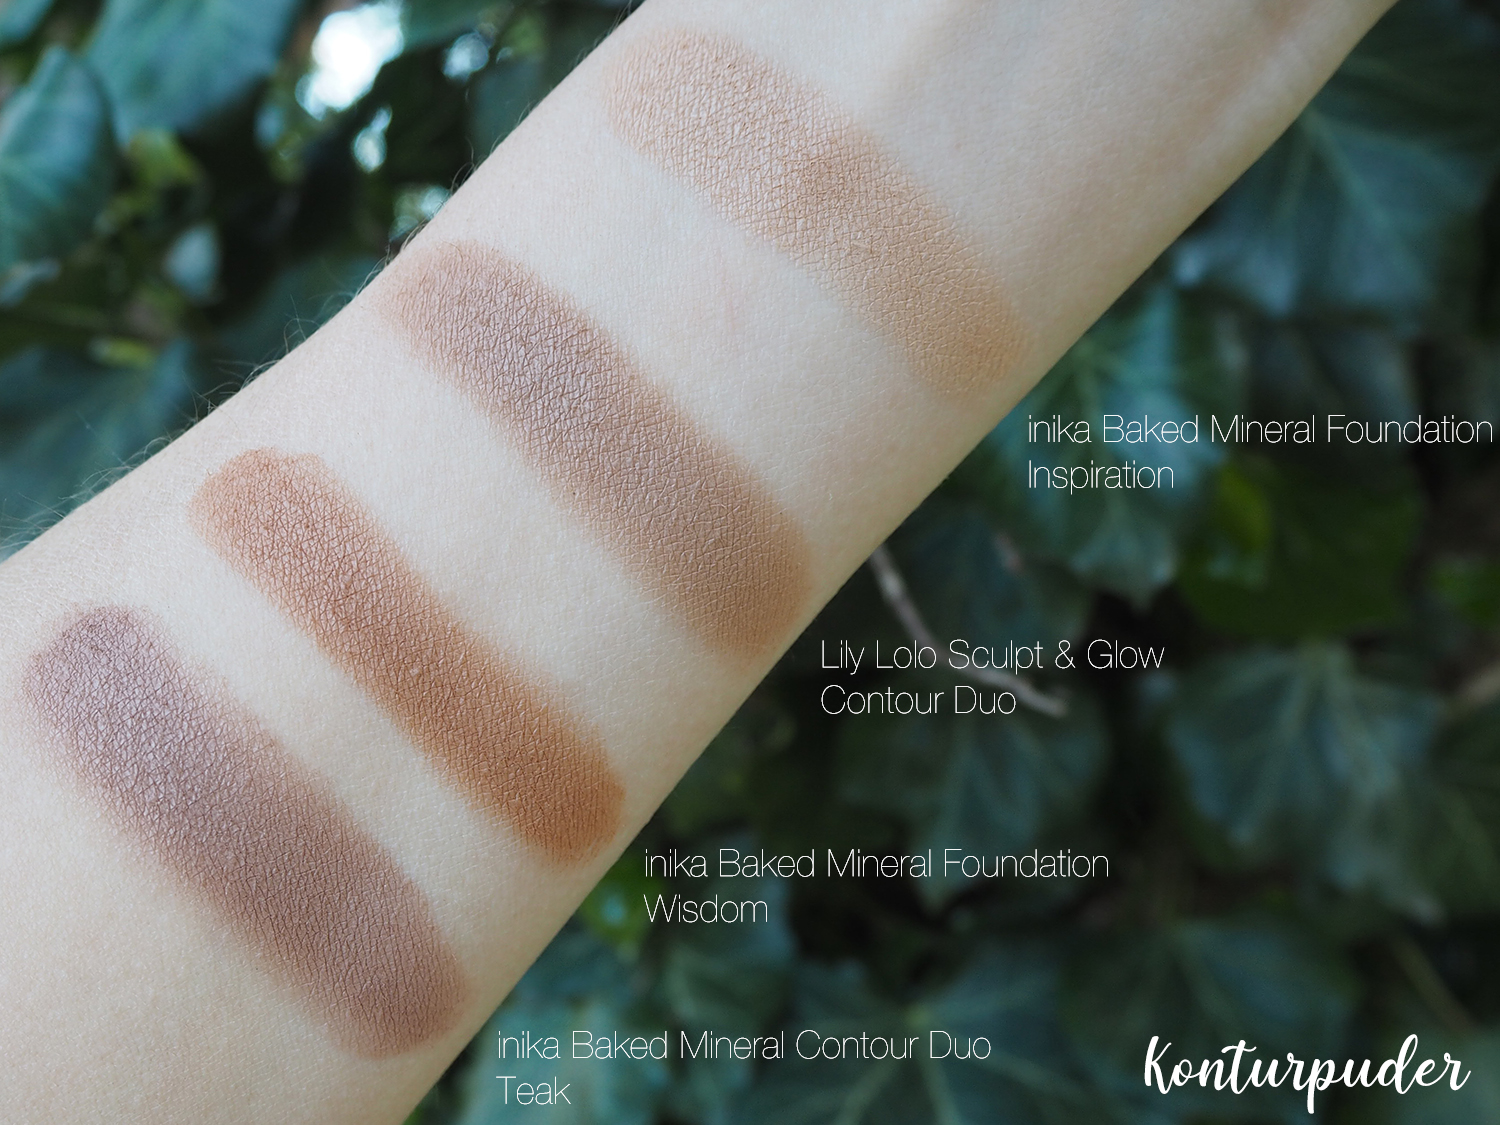 Swatches Lily Lolo Contour Duo, inika Baked Mineral Foundation Inspiration, Wisdom und inika Baked Contour Duo Teak